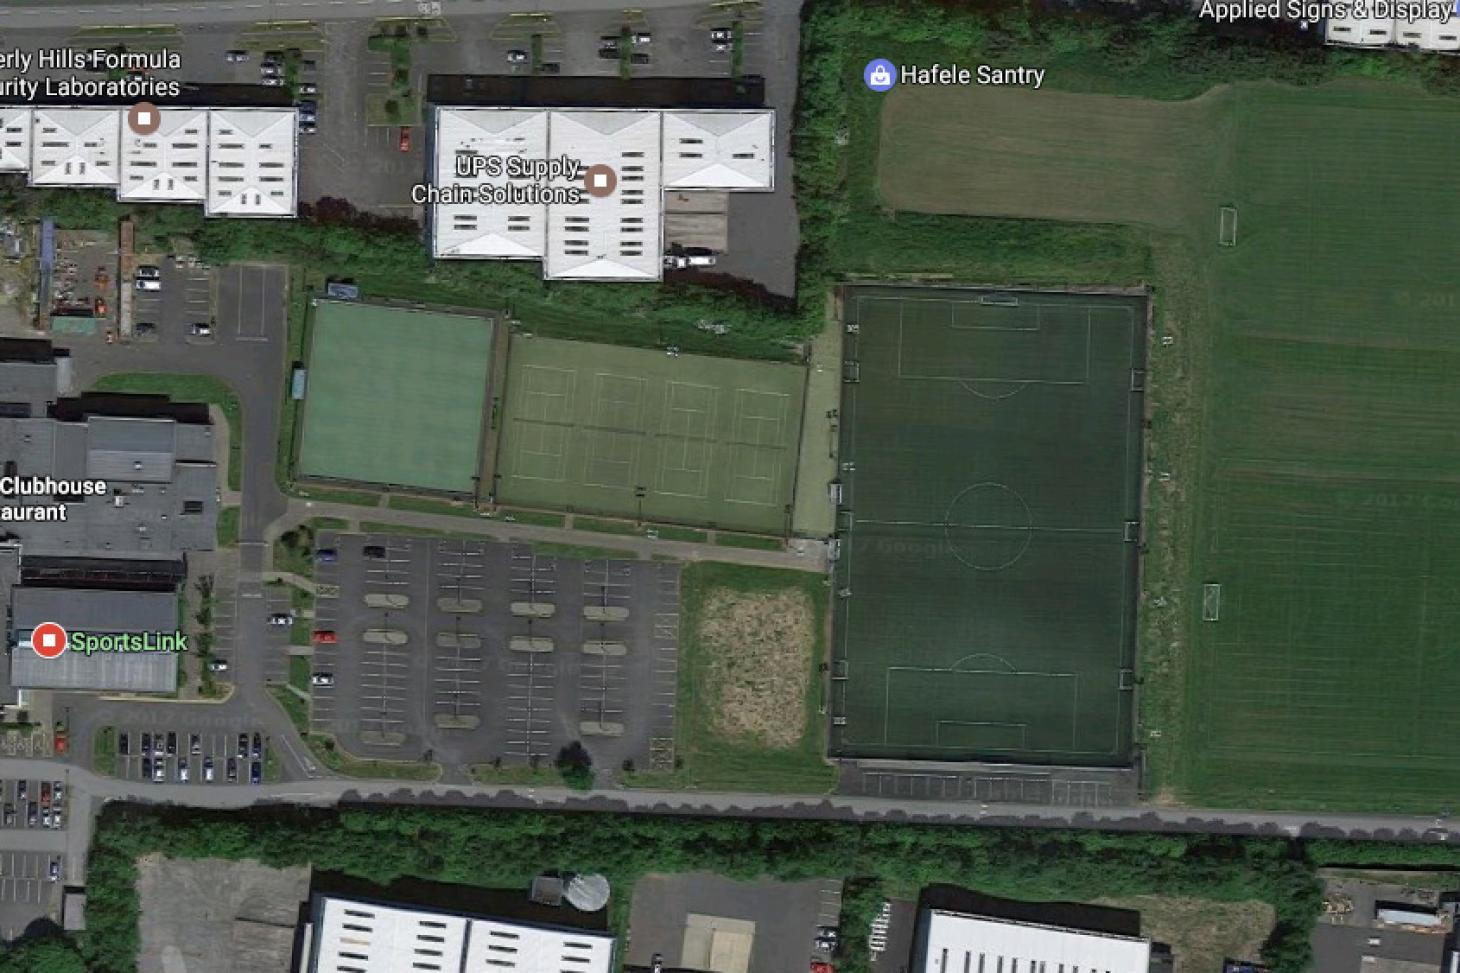 Sportslink 11 a side | Astroturf football pitch